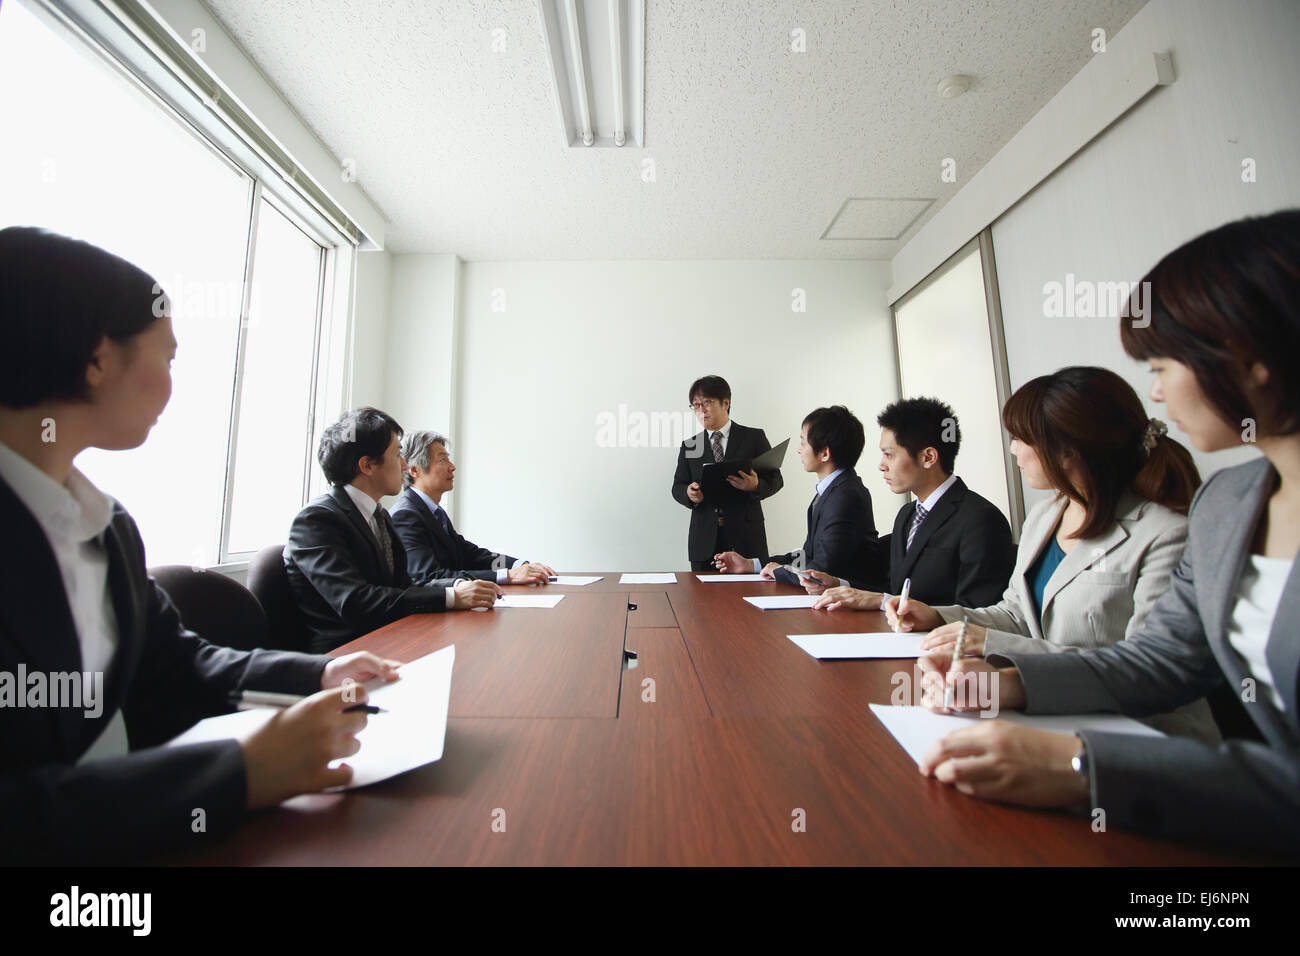 Japanese business people attending board meeting Stock Photo